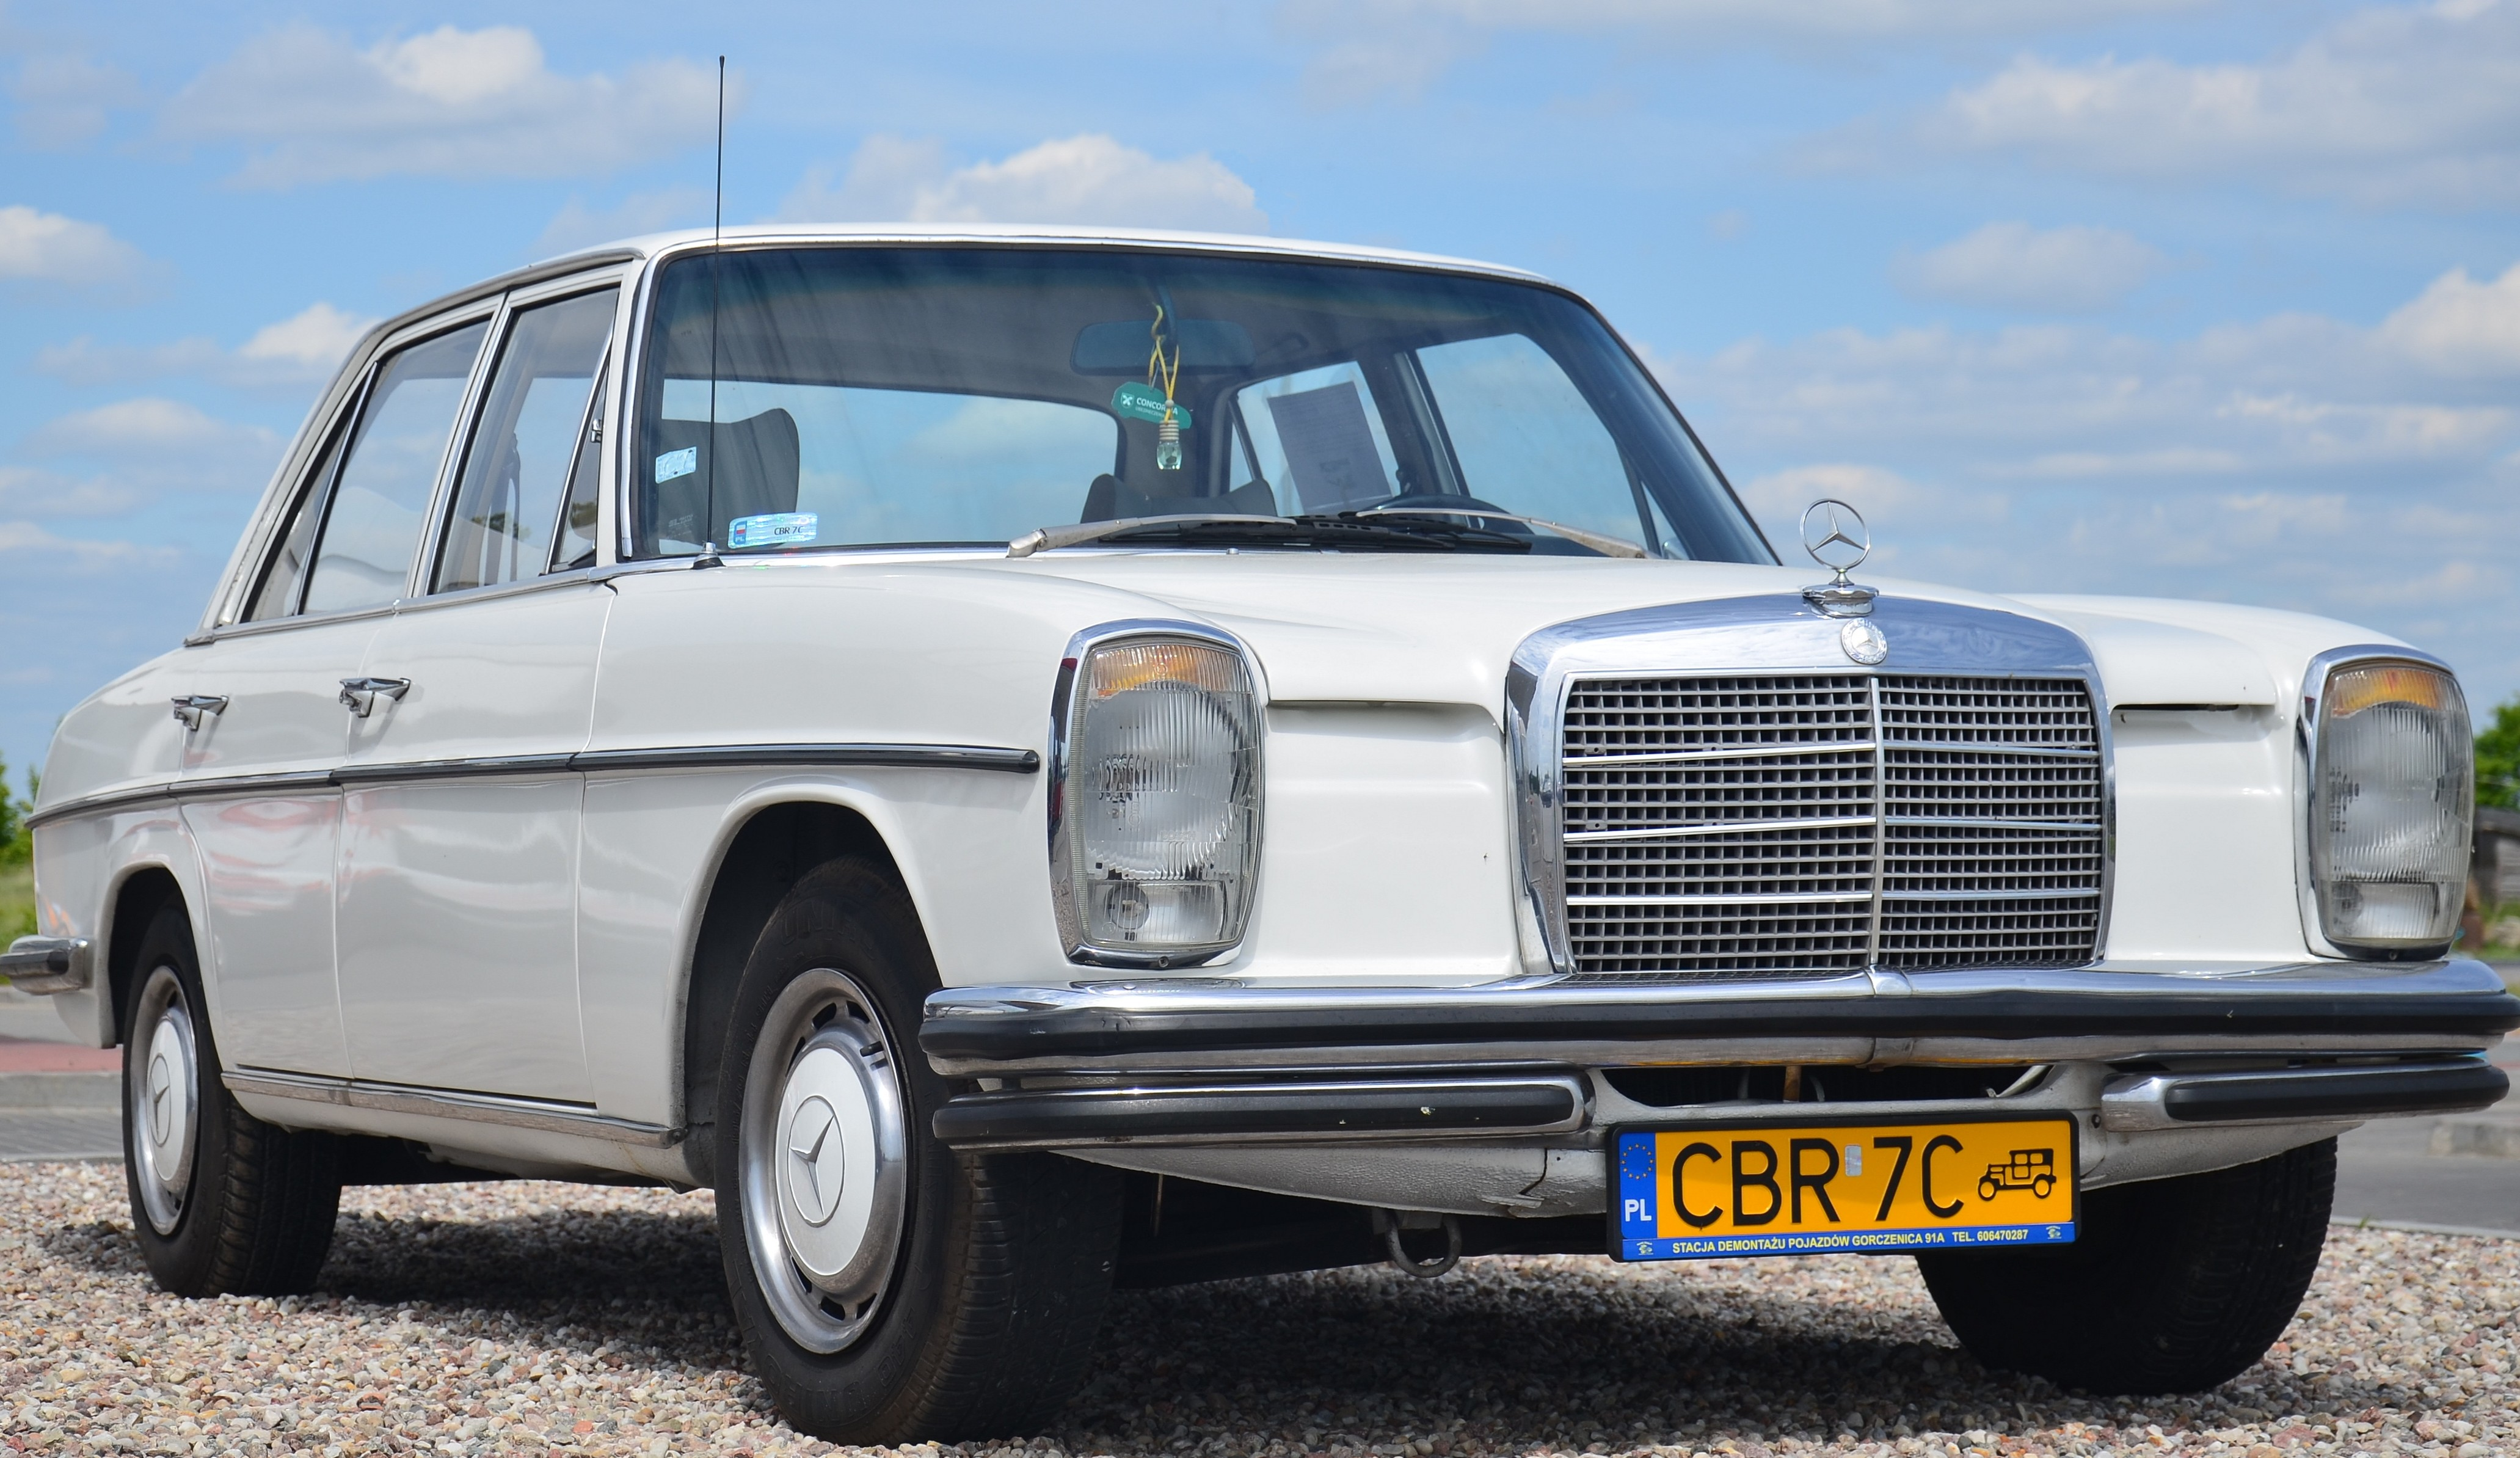 1973 Mecedes-Benz Donated to Mind Body Awareness Project